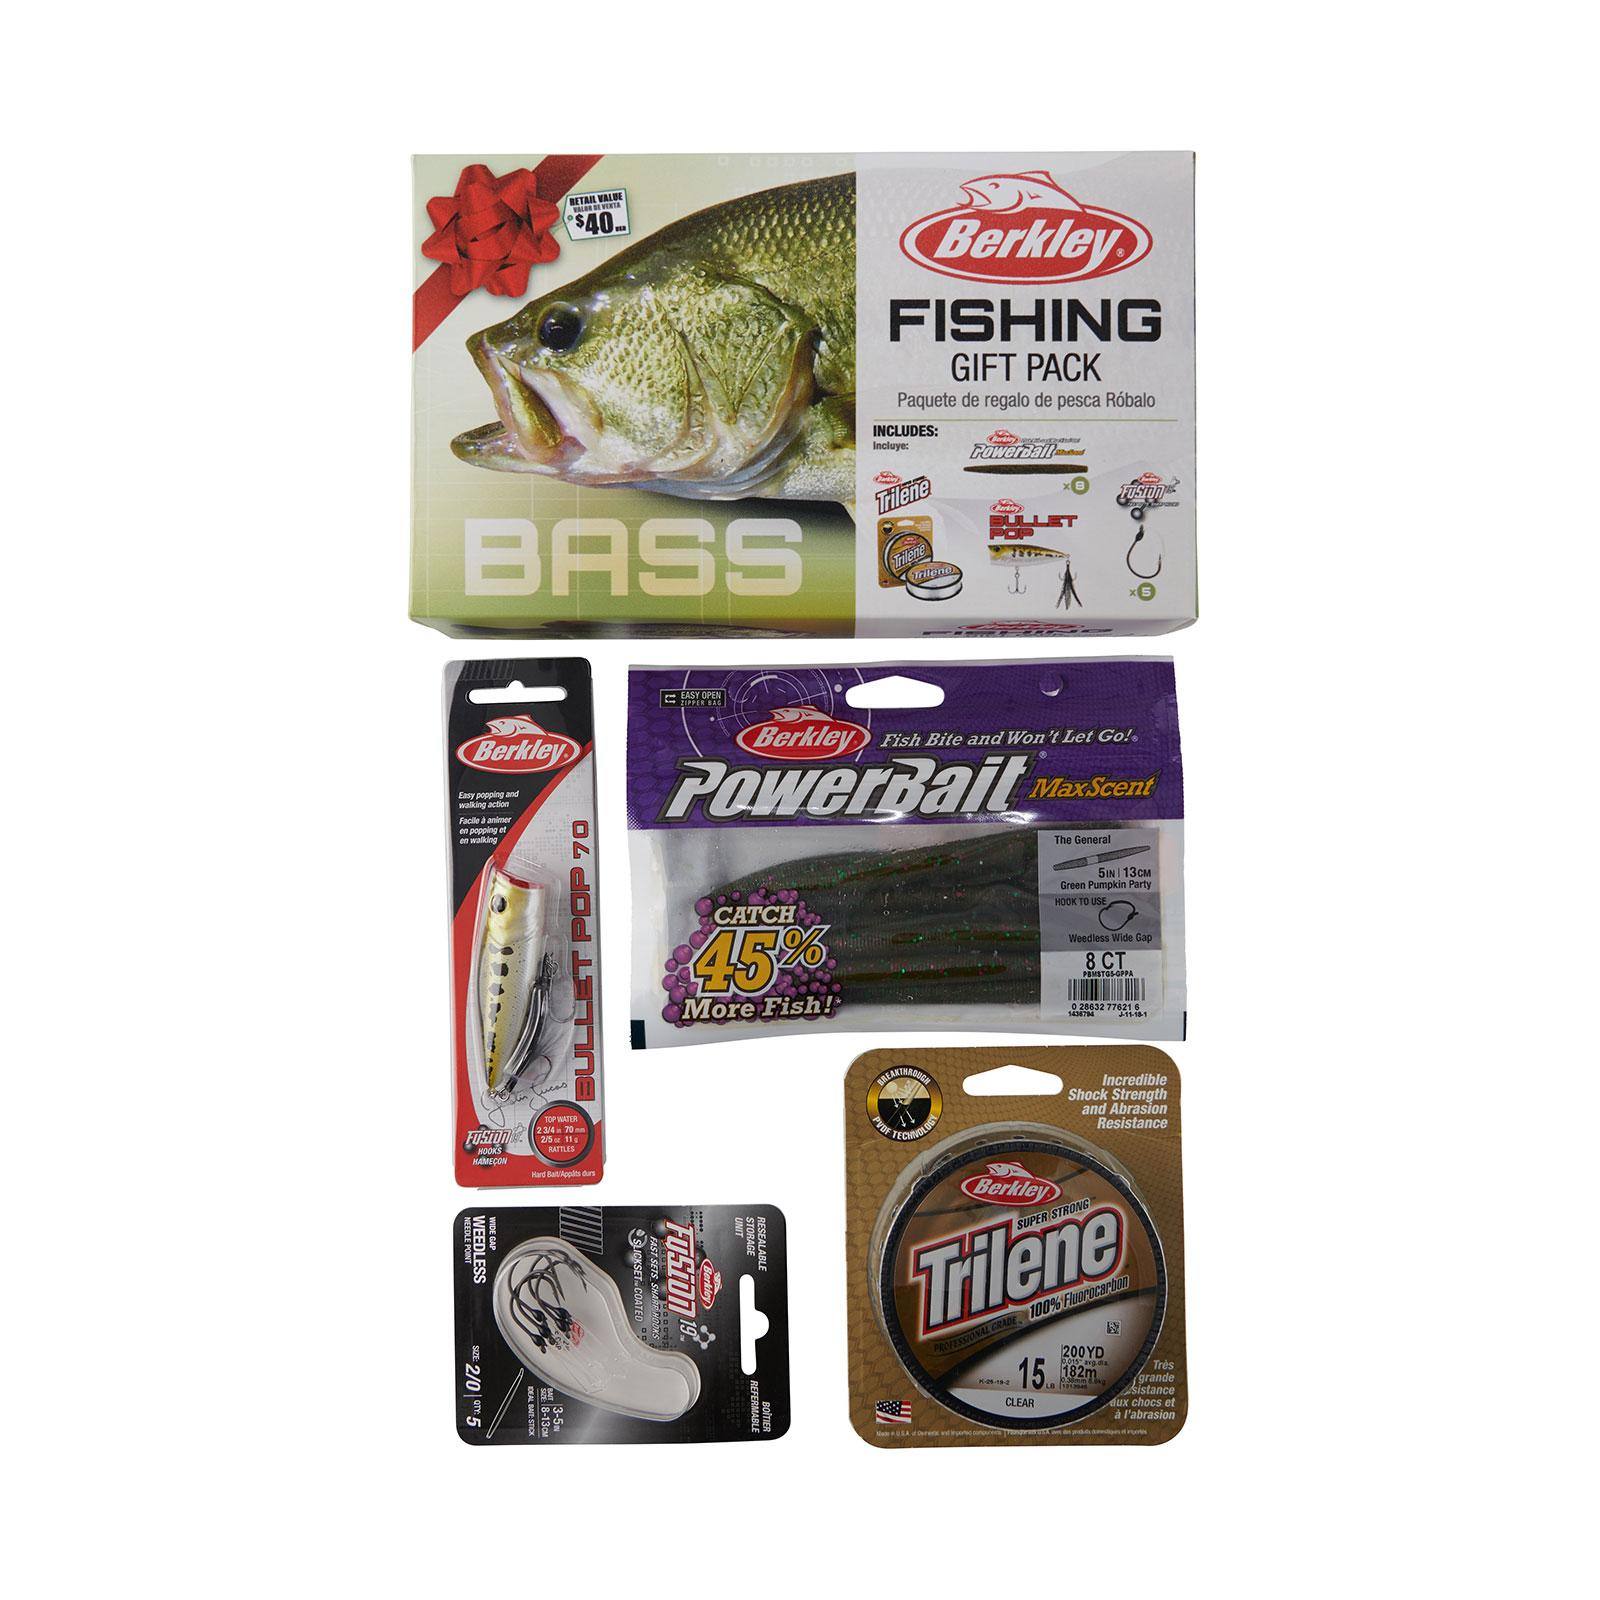 BRKLY BASS FISHING GIFT KIT 20 pkgs